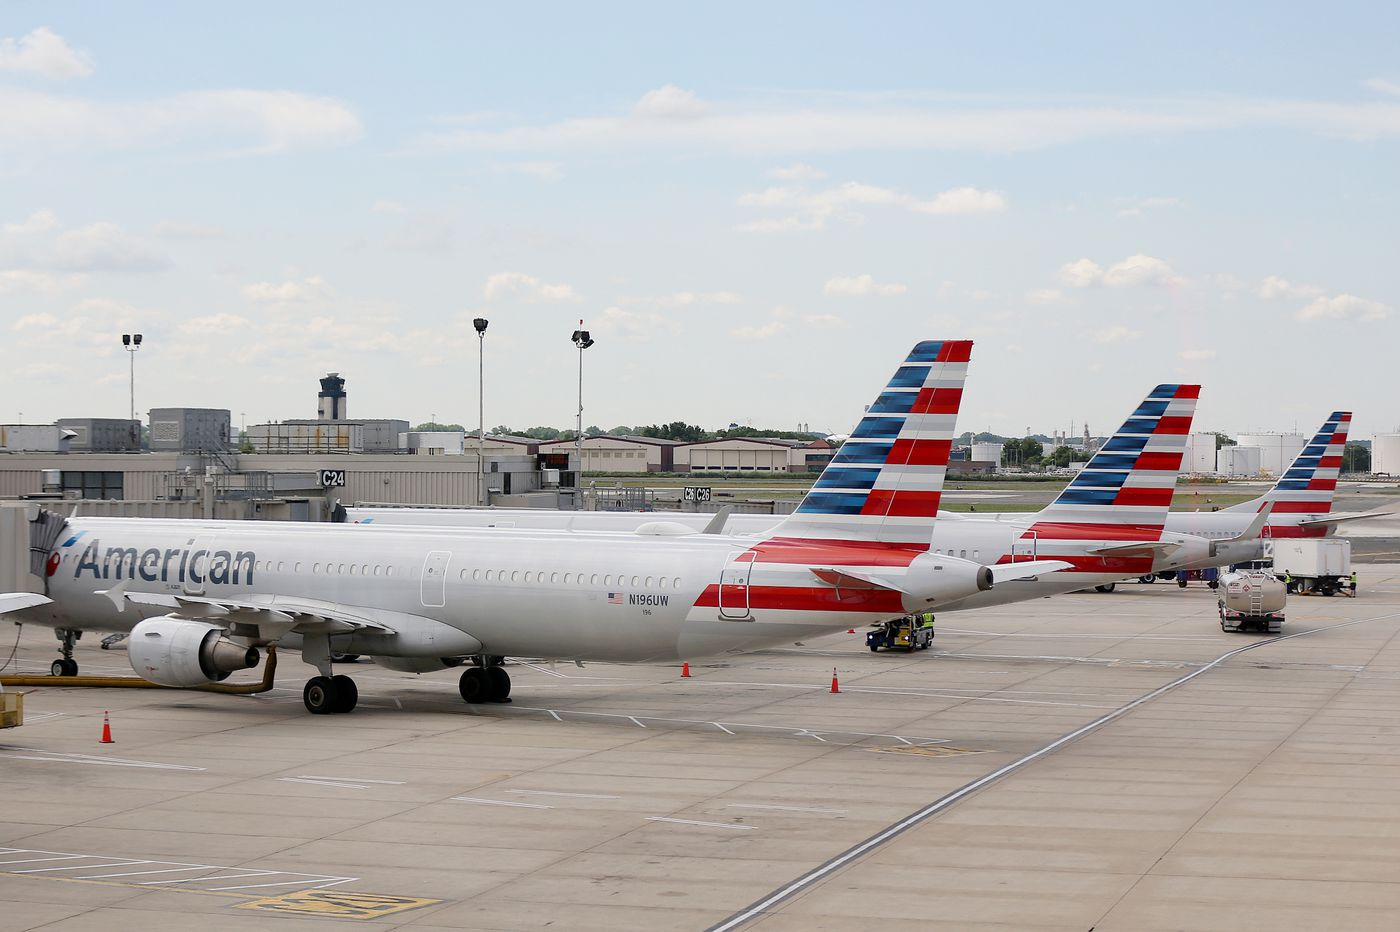 COVID-19 risk on airplanes is low if these precautions are taken, Harvard study says